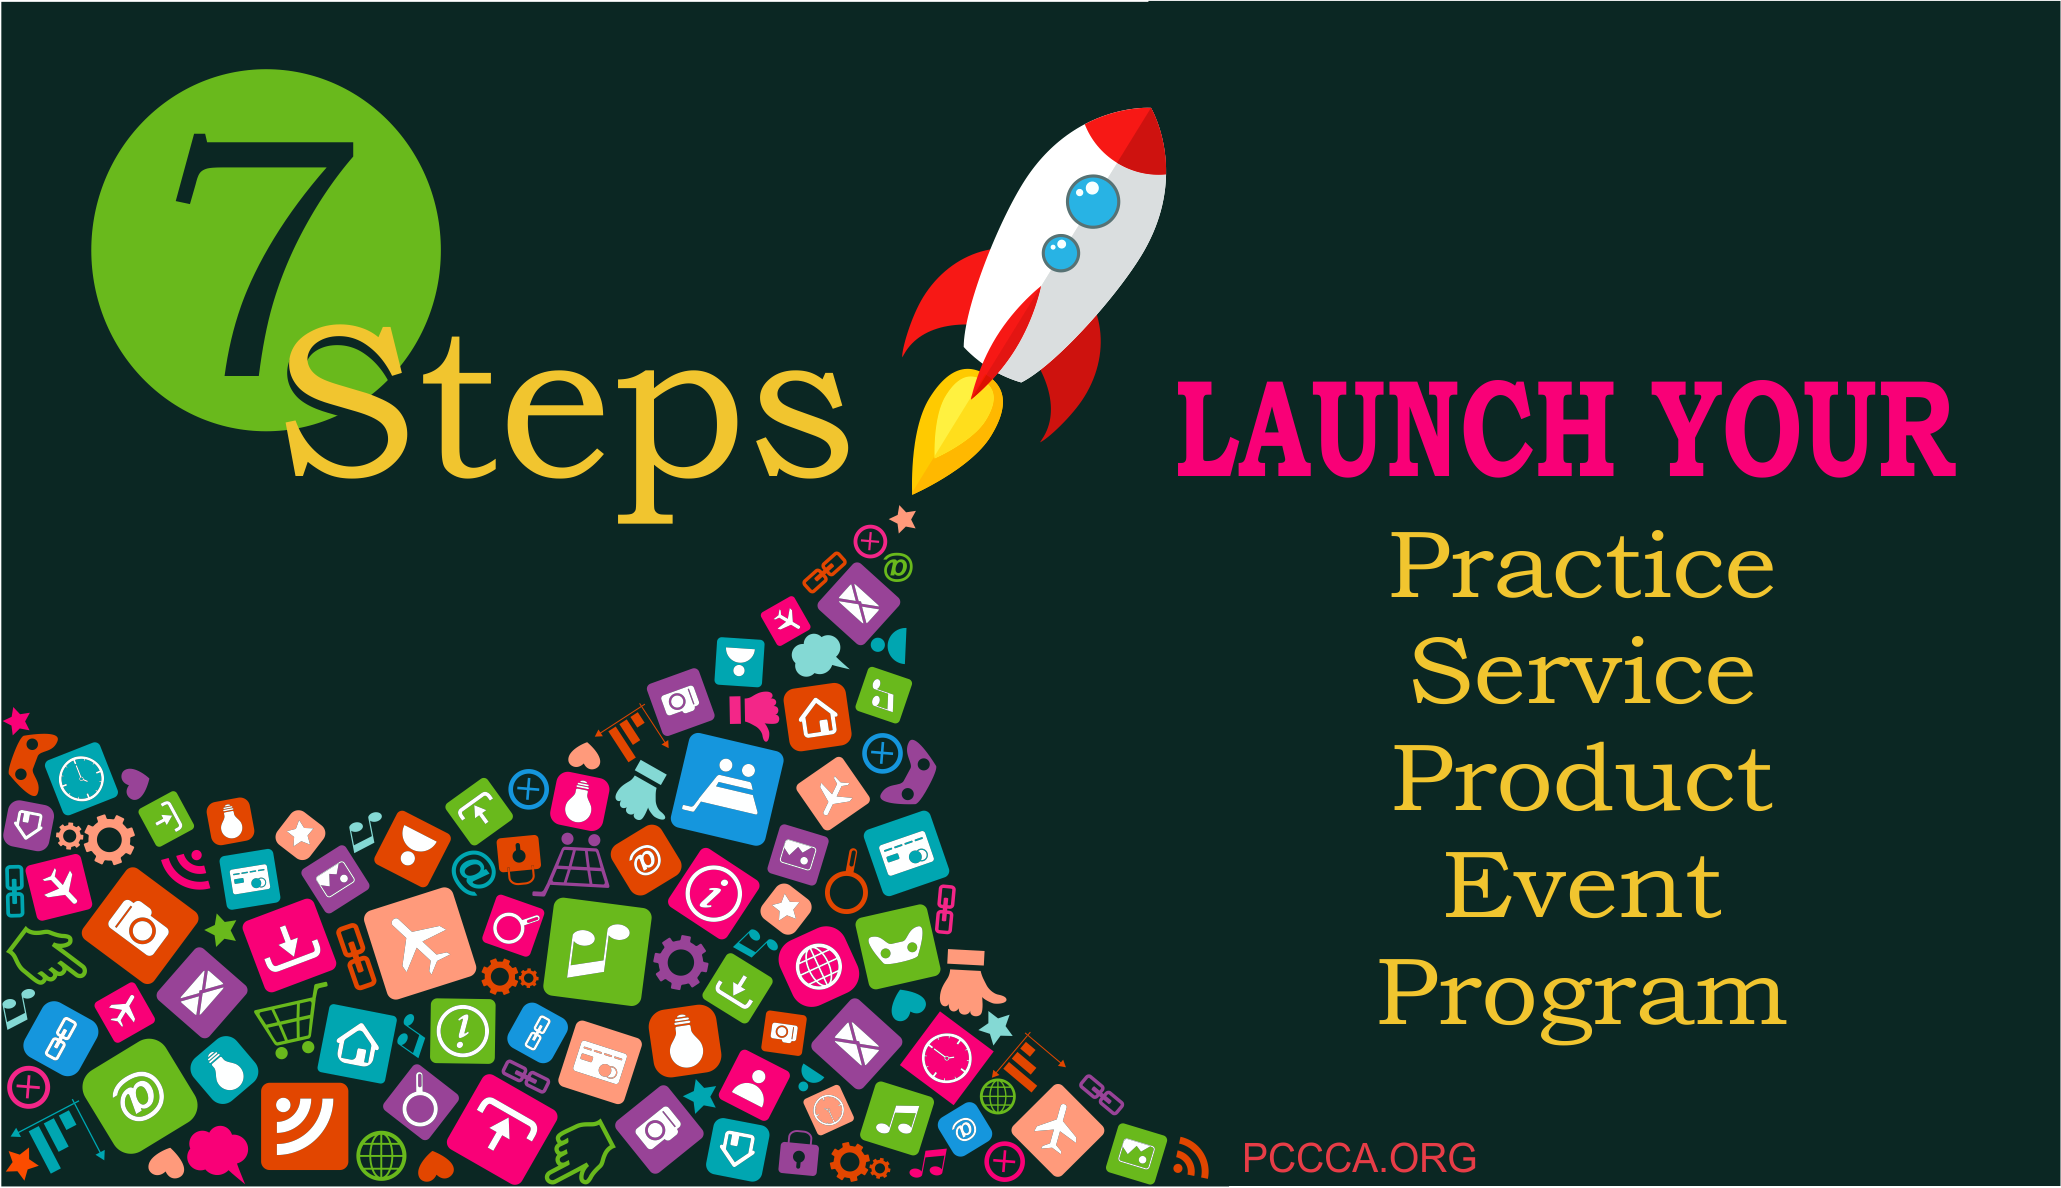 7 Steps to Launch your practice product service https://pccca.org